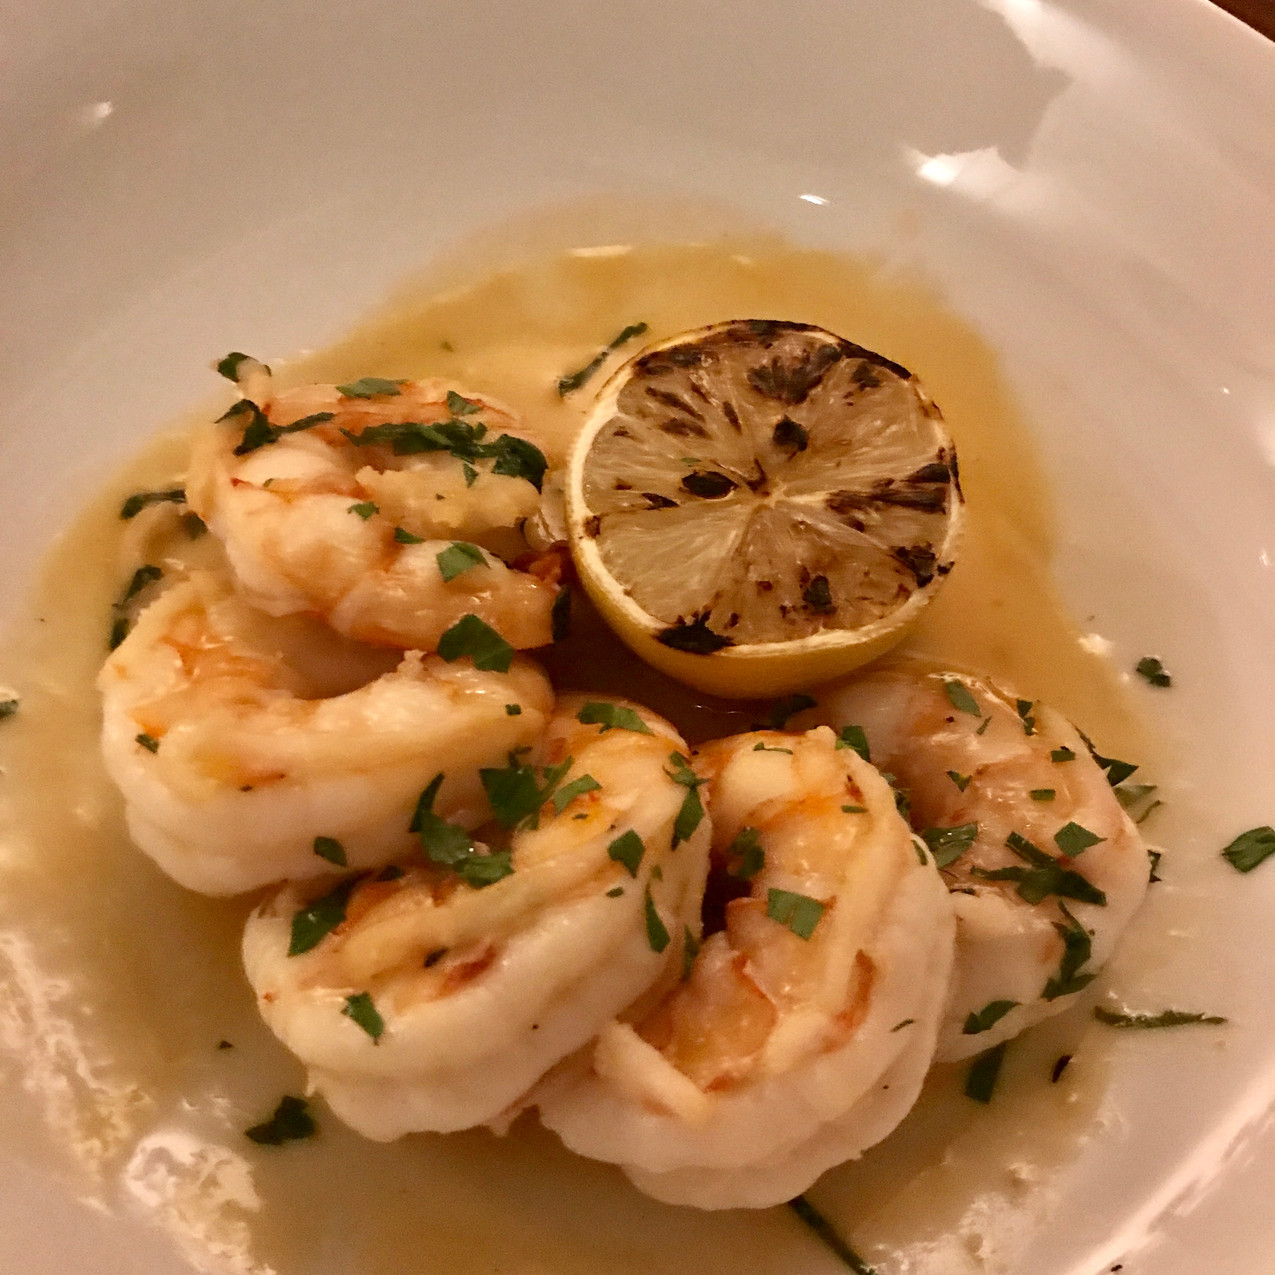 Succulent lemon shrimp